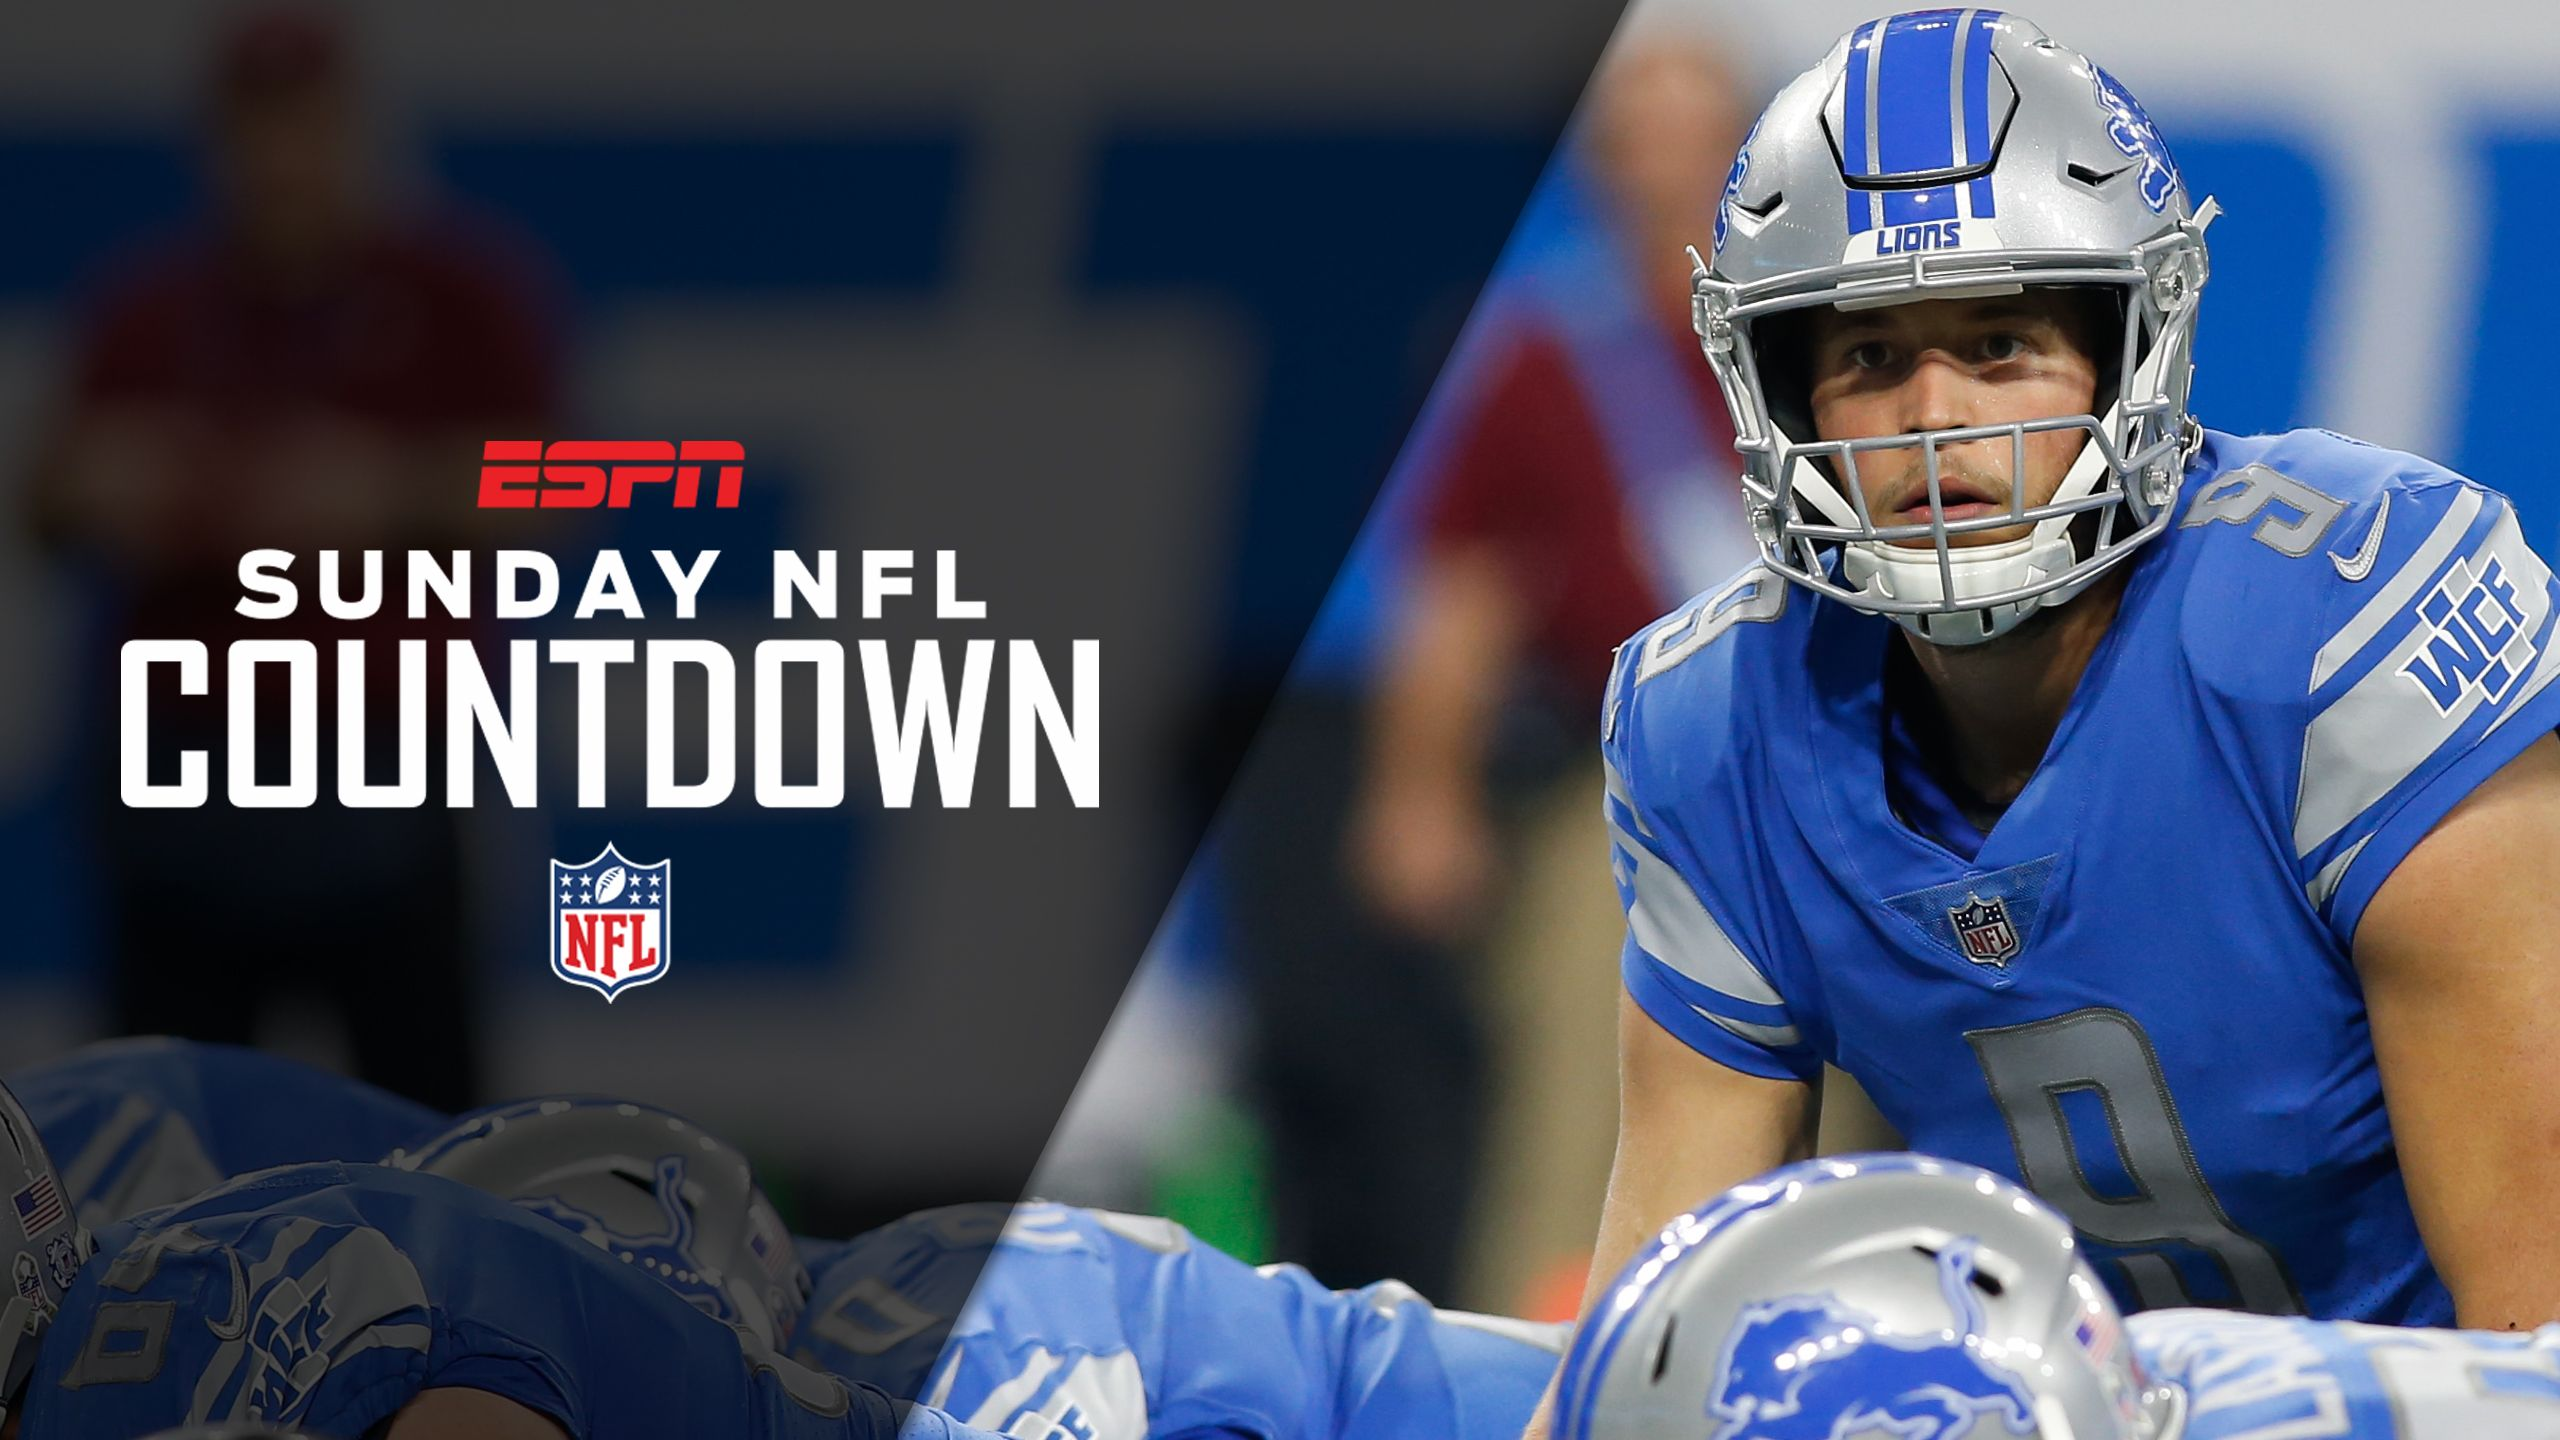 Sunday NFL Countdown presented by Snickers